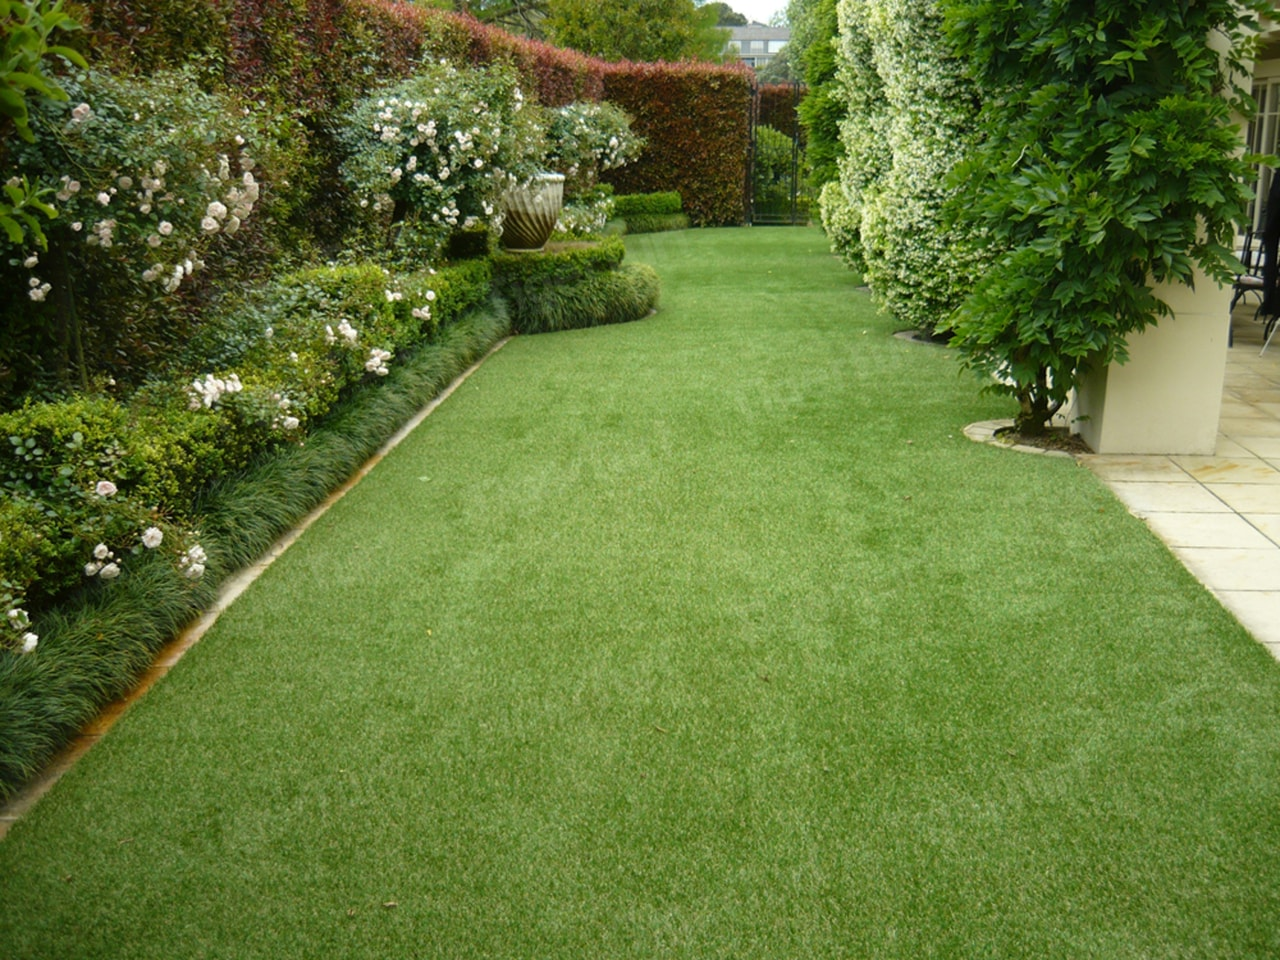 B4C3C Wmlowery Flyer - artificial turf | backyard artificial turf, backyard, garden, grass, grass family, groundcover, landscape, landscaping, lawn, plant, shrub, yard, green, brown